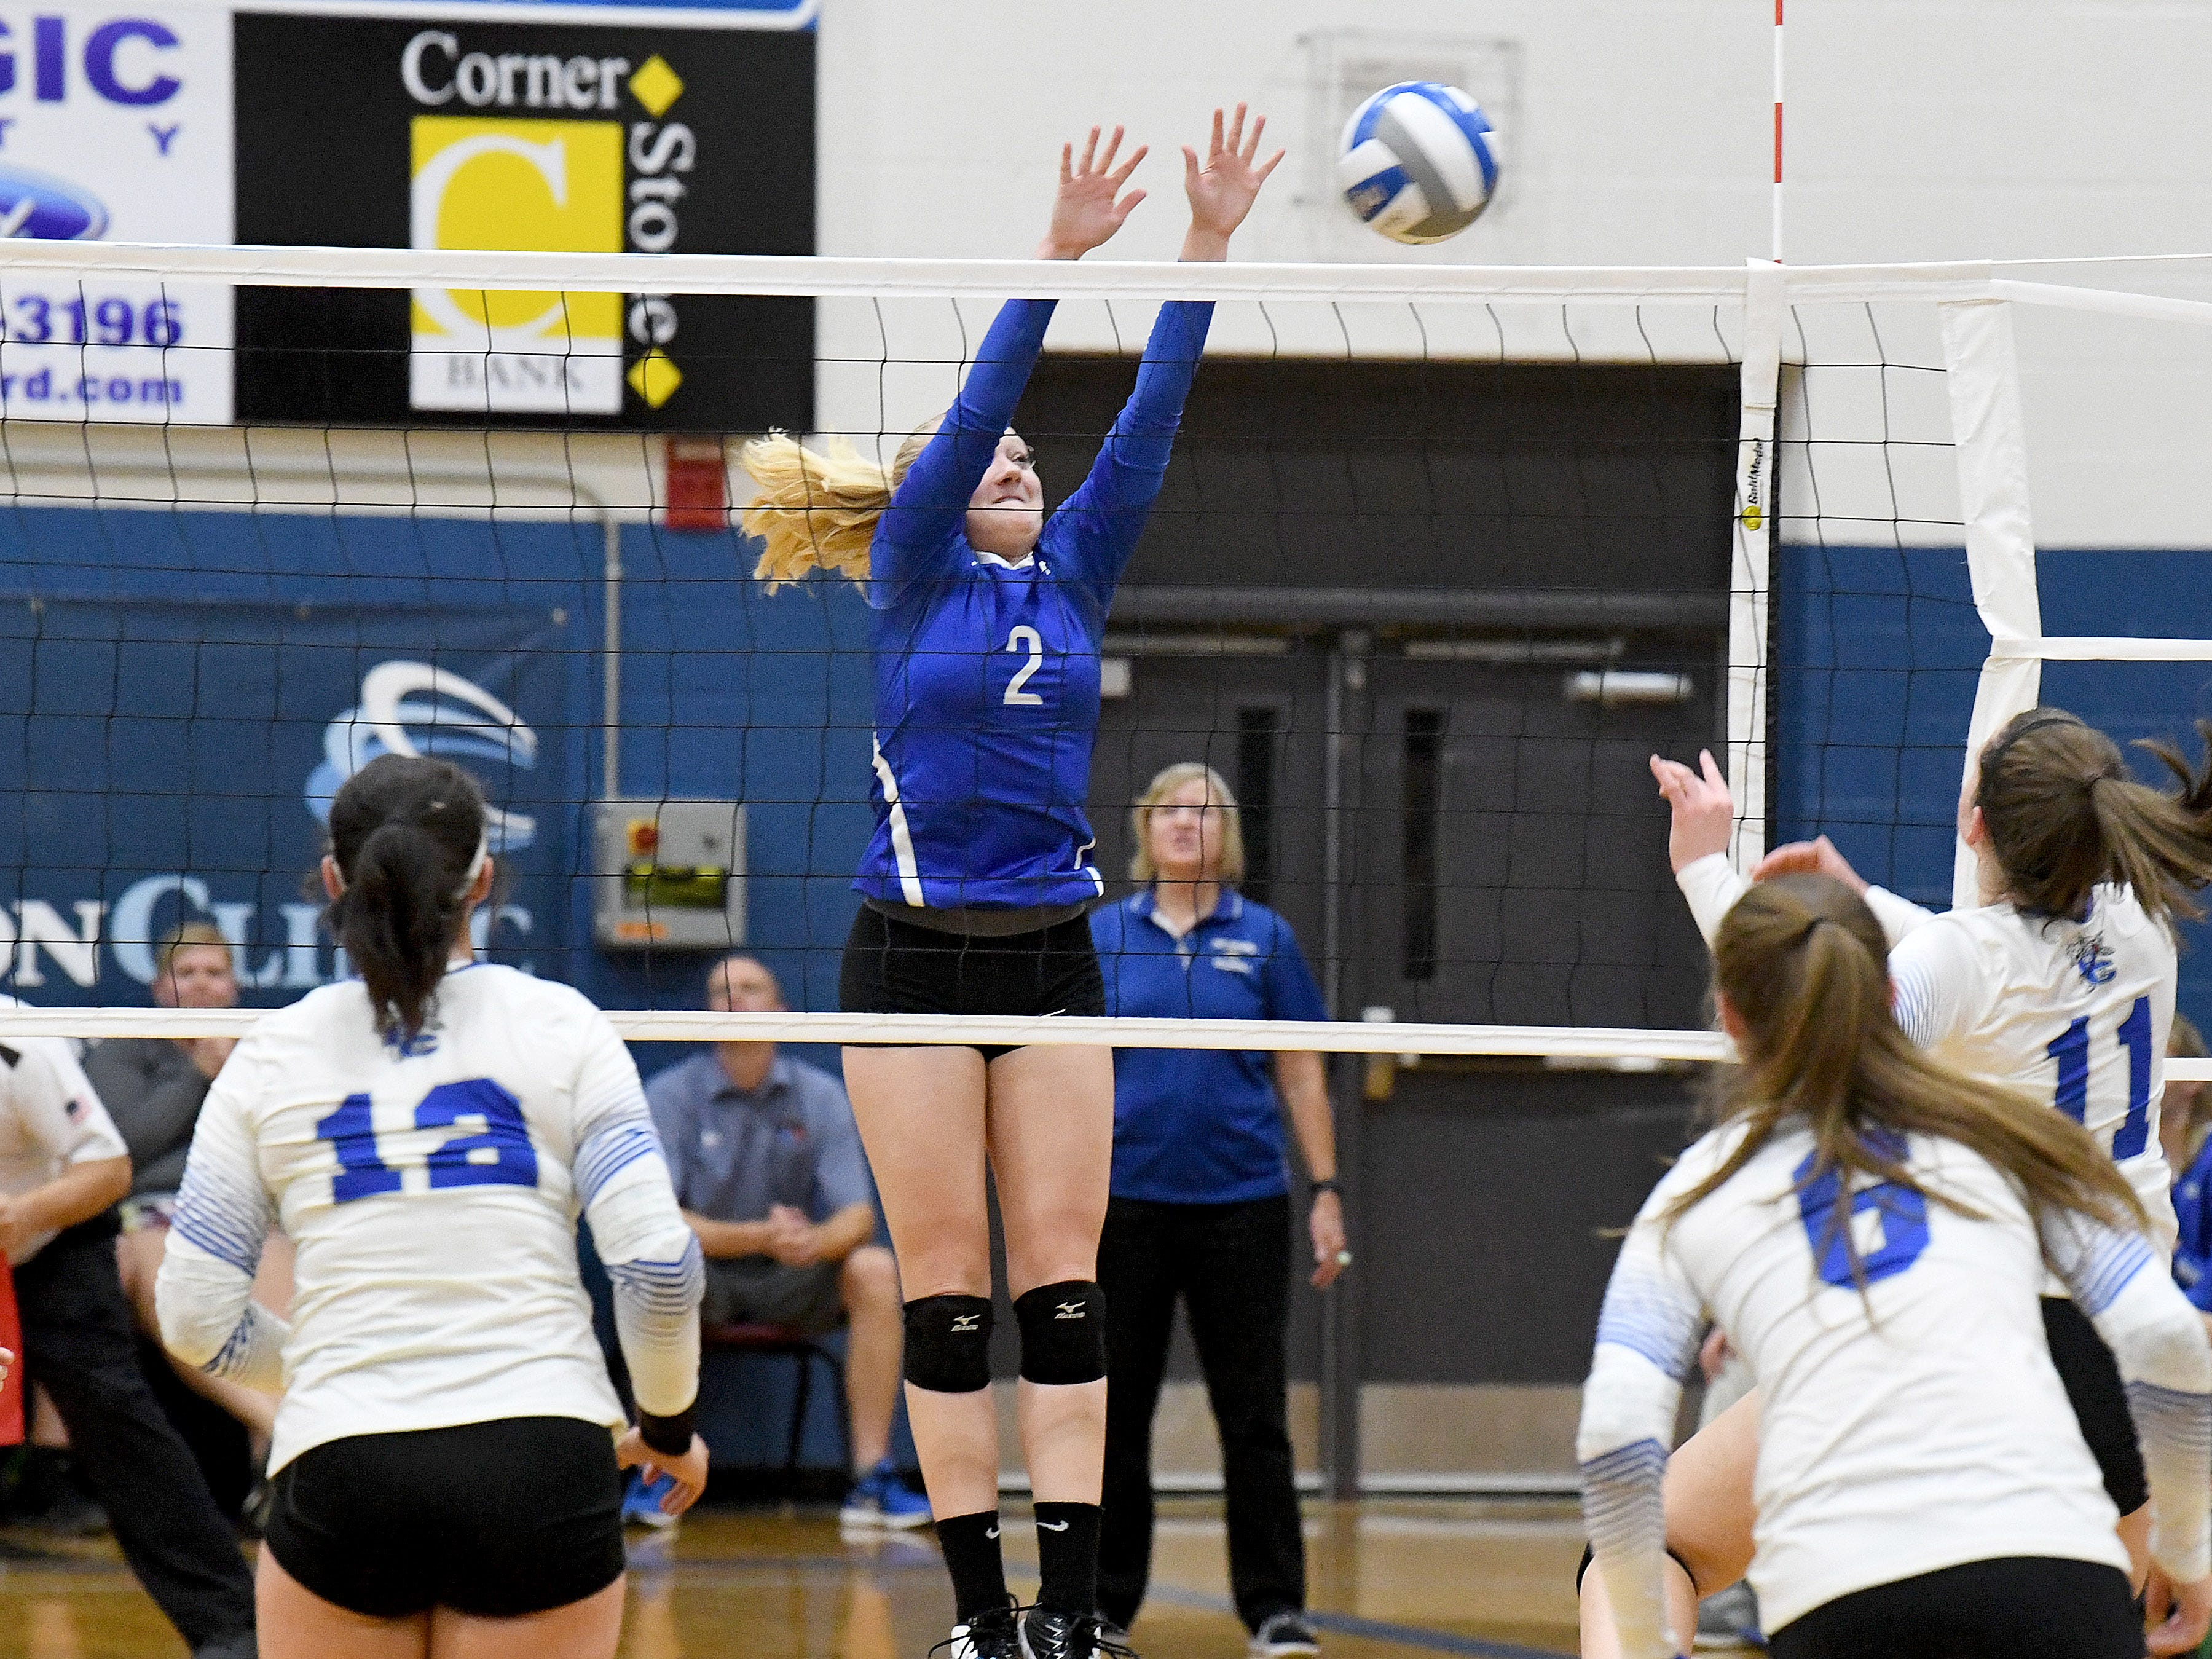 Fort Defiance's Ashley Humphries tries to block a return at the net during a Region 3C semifinal match played in Lexington on Monday, Nov. 5, 2018.